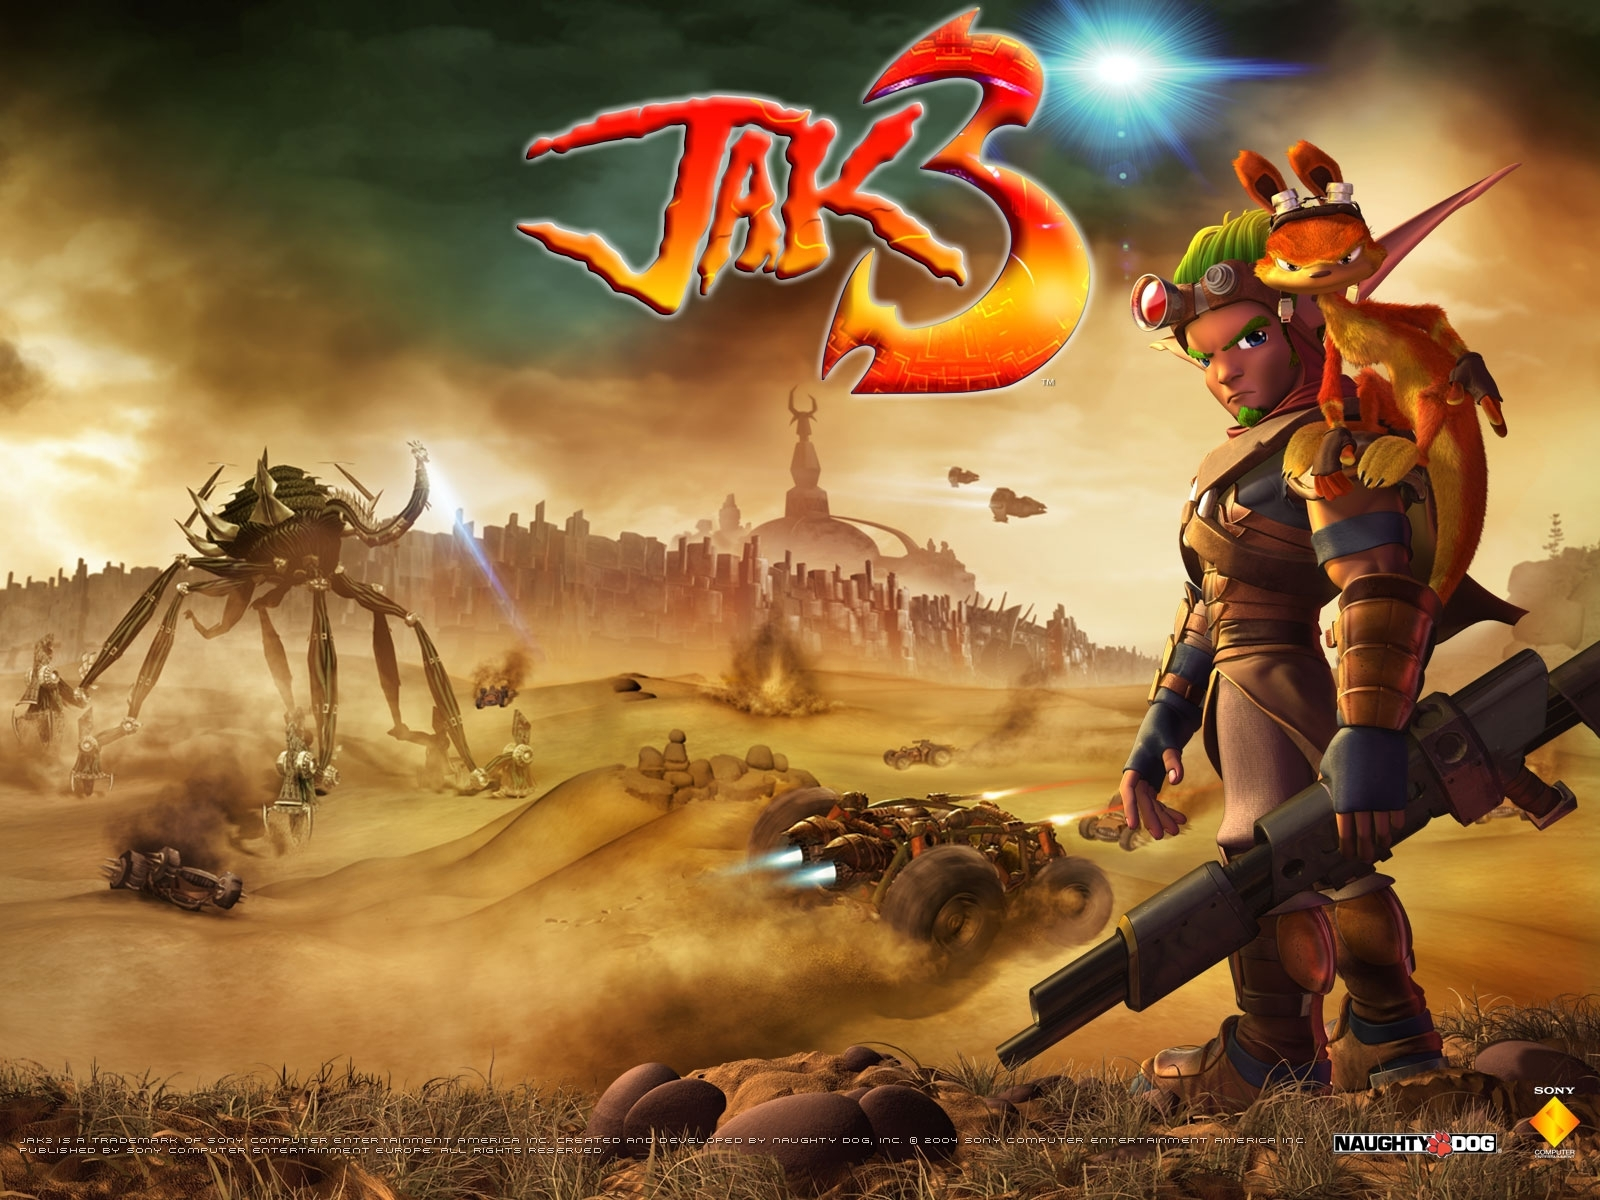 Download Jak Daxter Wallpapers: Jak And Daxter Wallpaper (12532401)